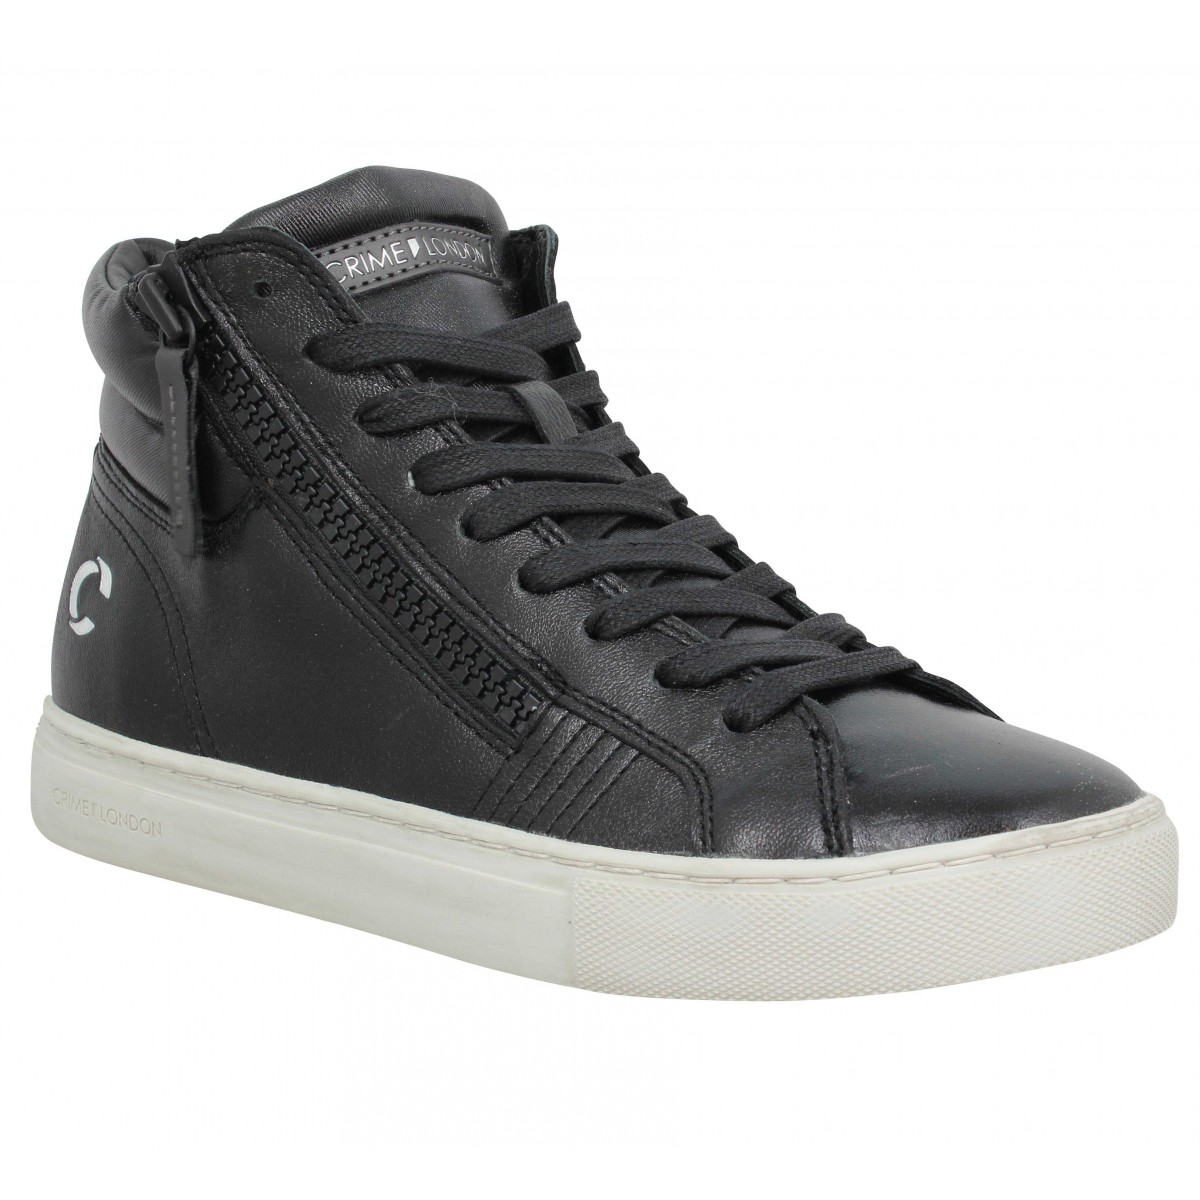 Baskets CRIME LONDON Java Hi cuir Femme Black Black